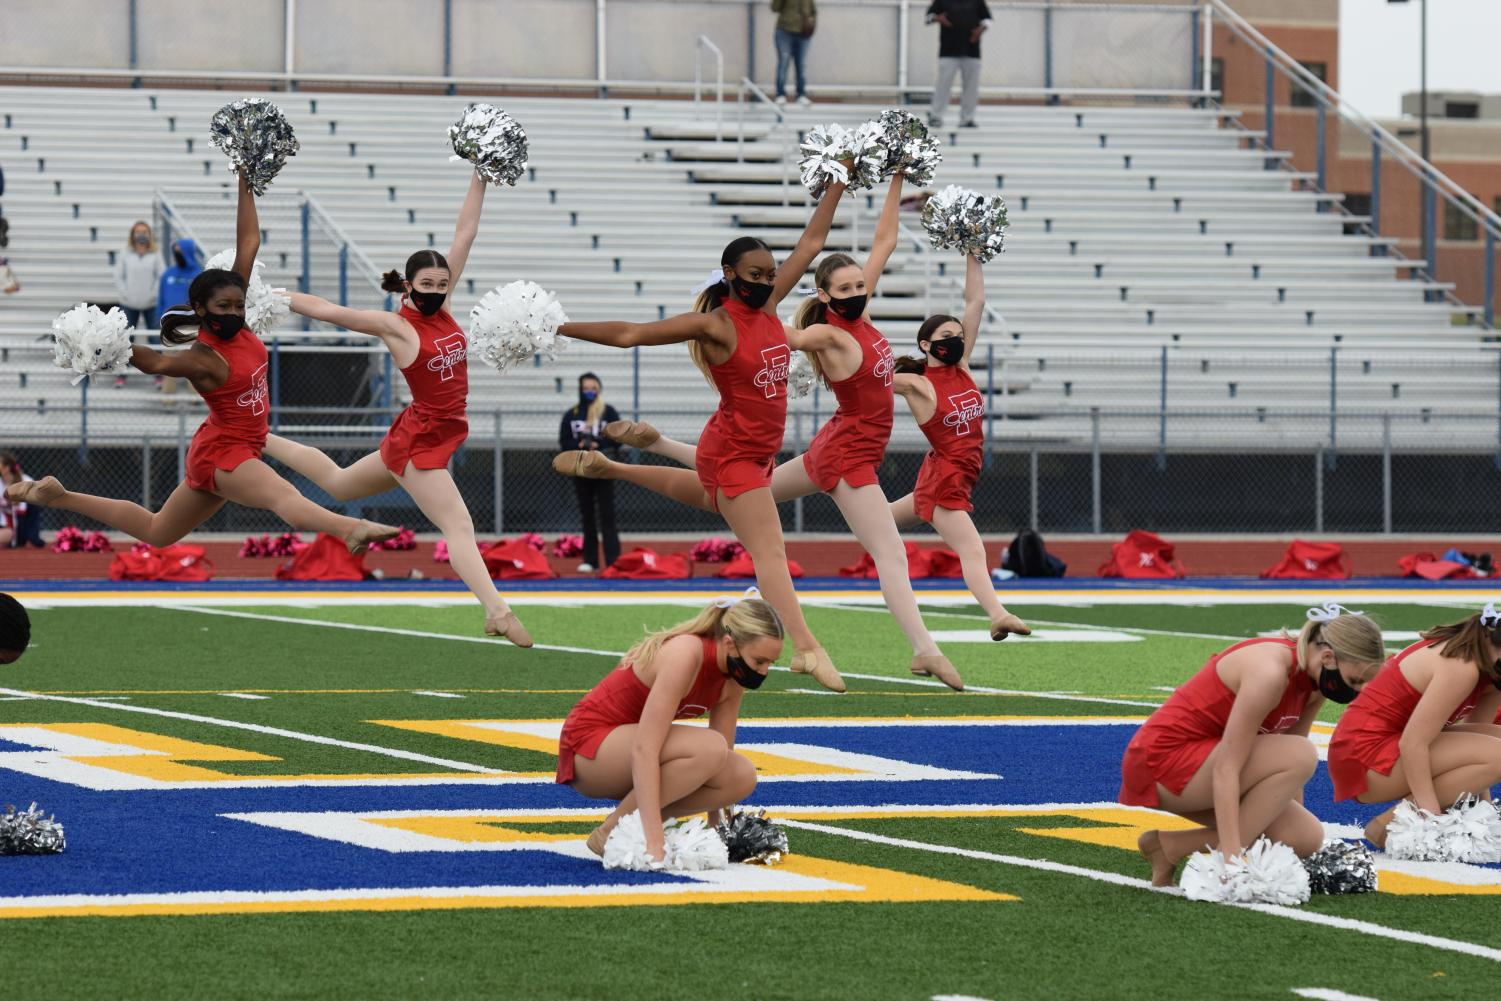 The dance team performs at halftime at the first football game of the year on Oct. 3, 2020 at Francis Howell stadium.